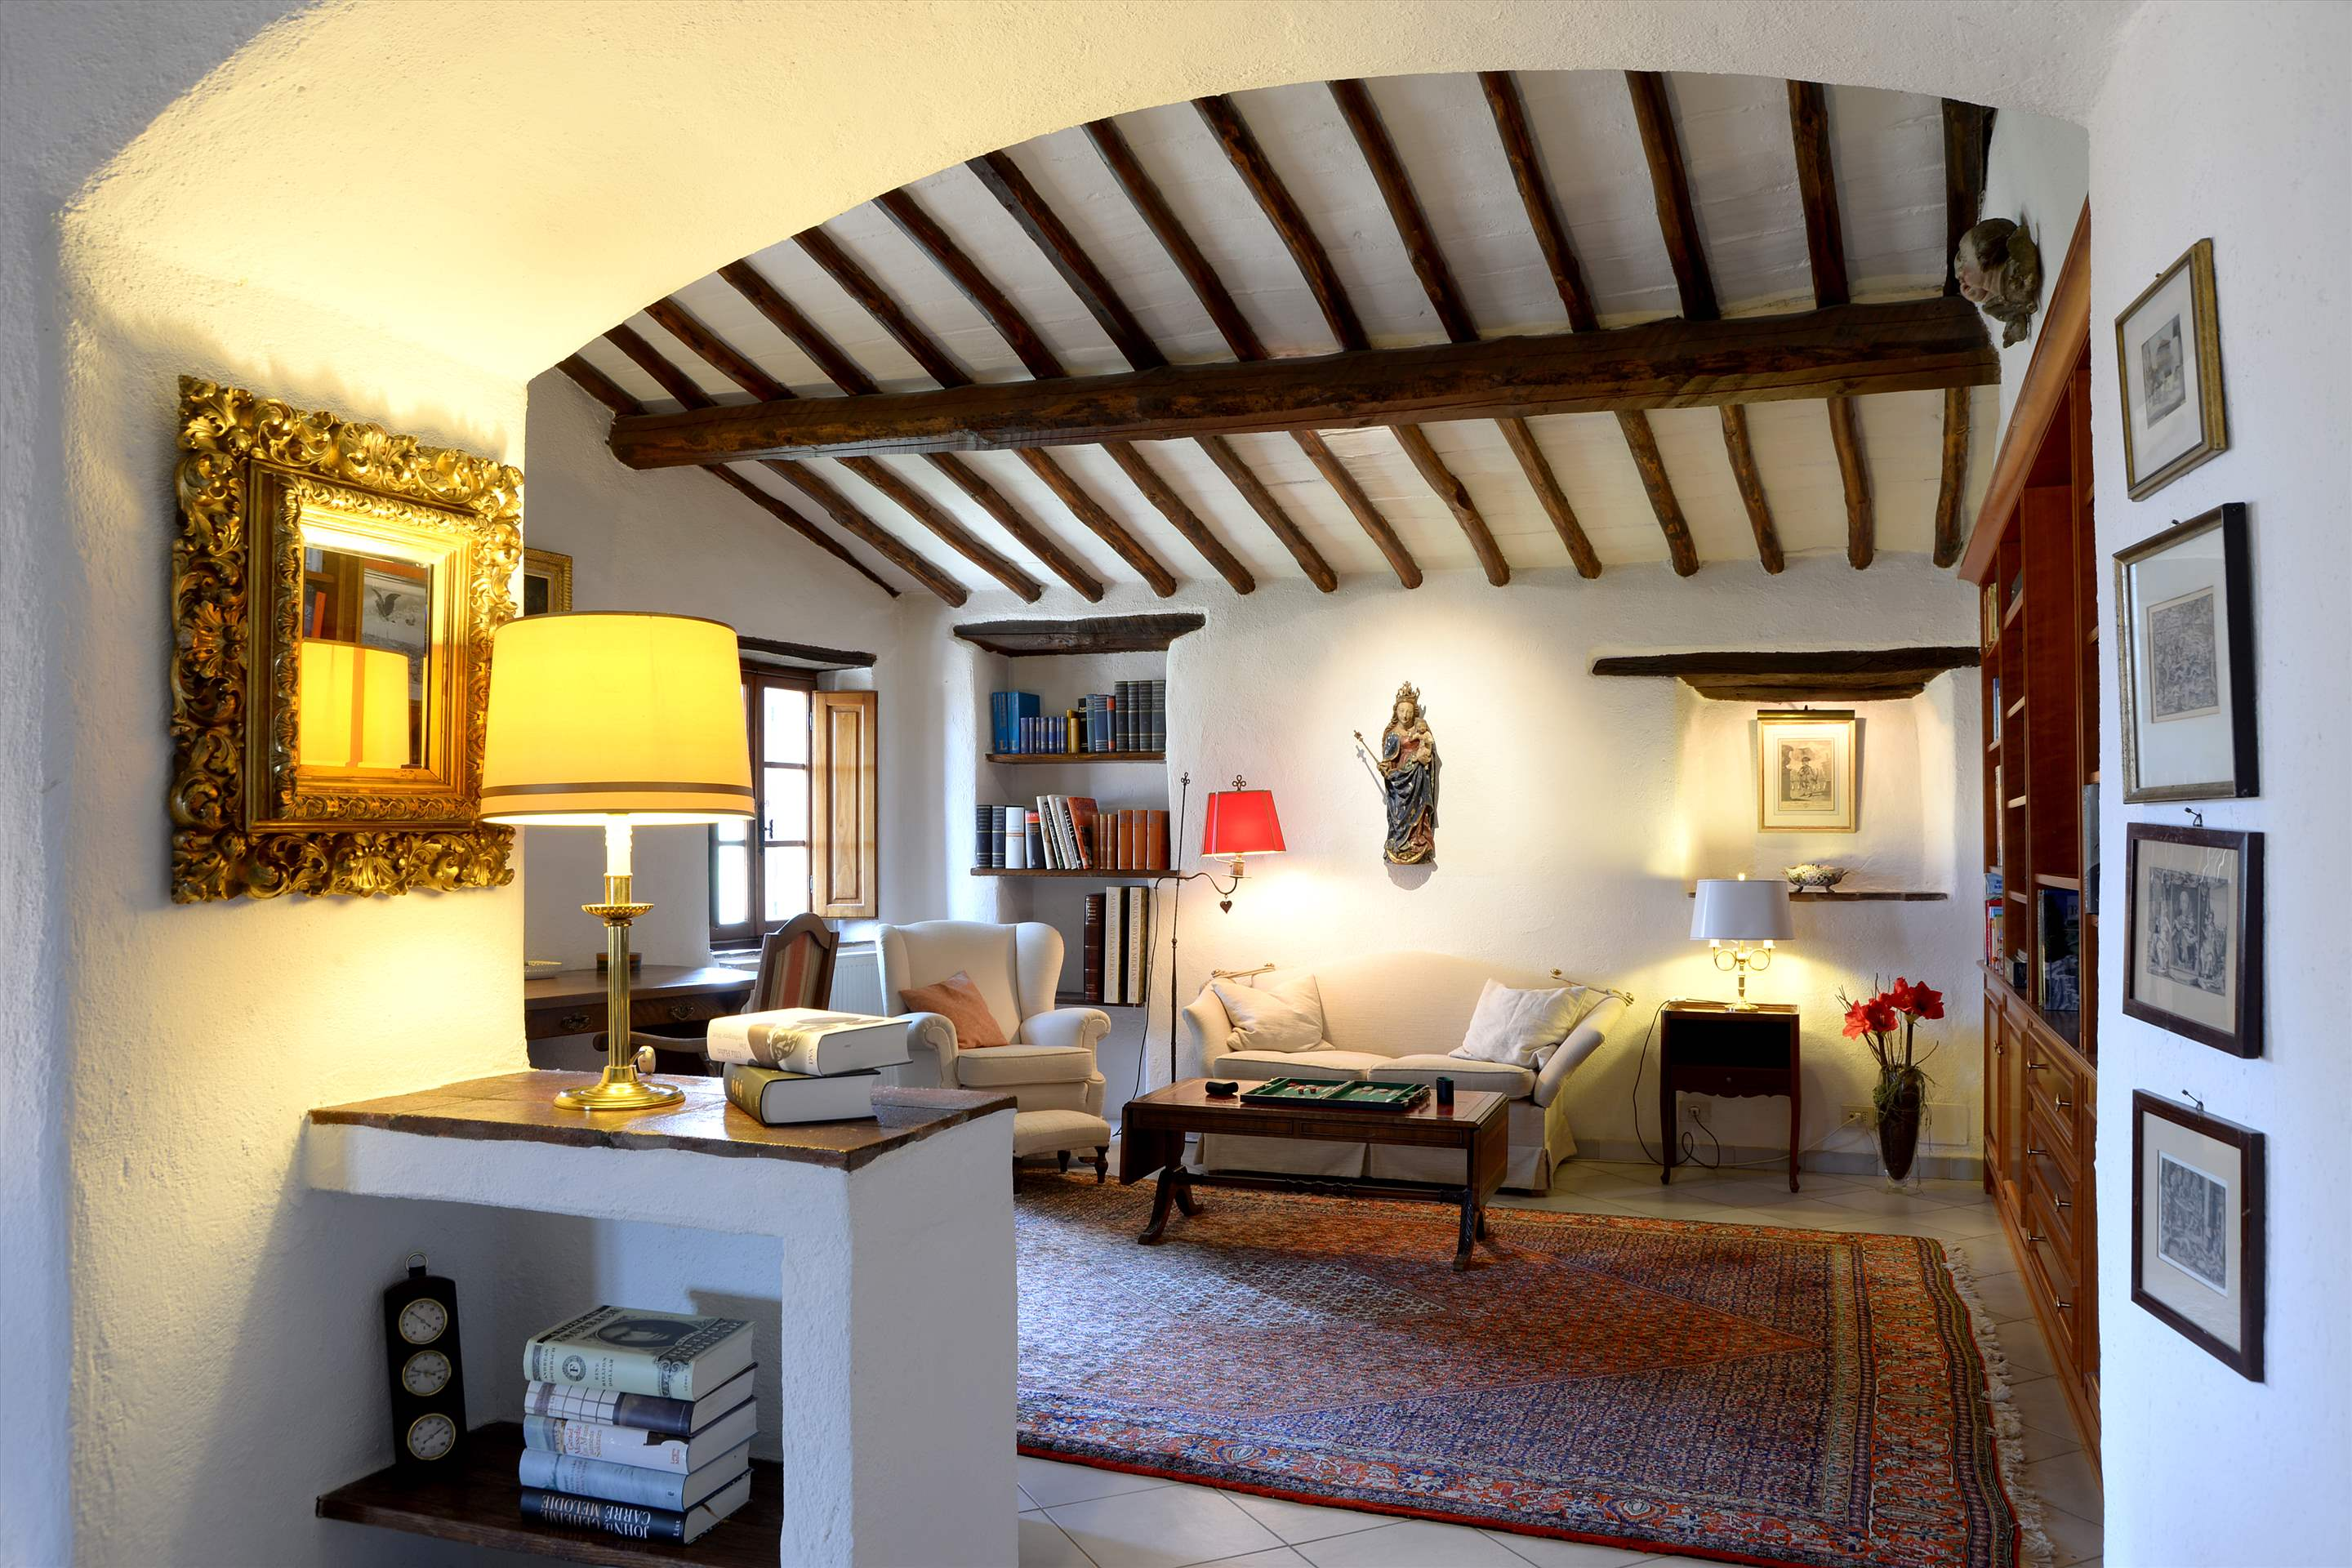 Villa Campana, 5 bedroom villa in Chianti & Countryside, Tuscany Photo #6